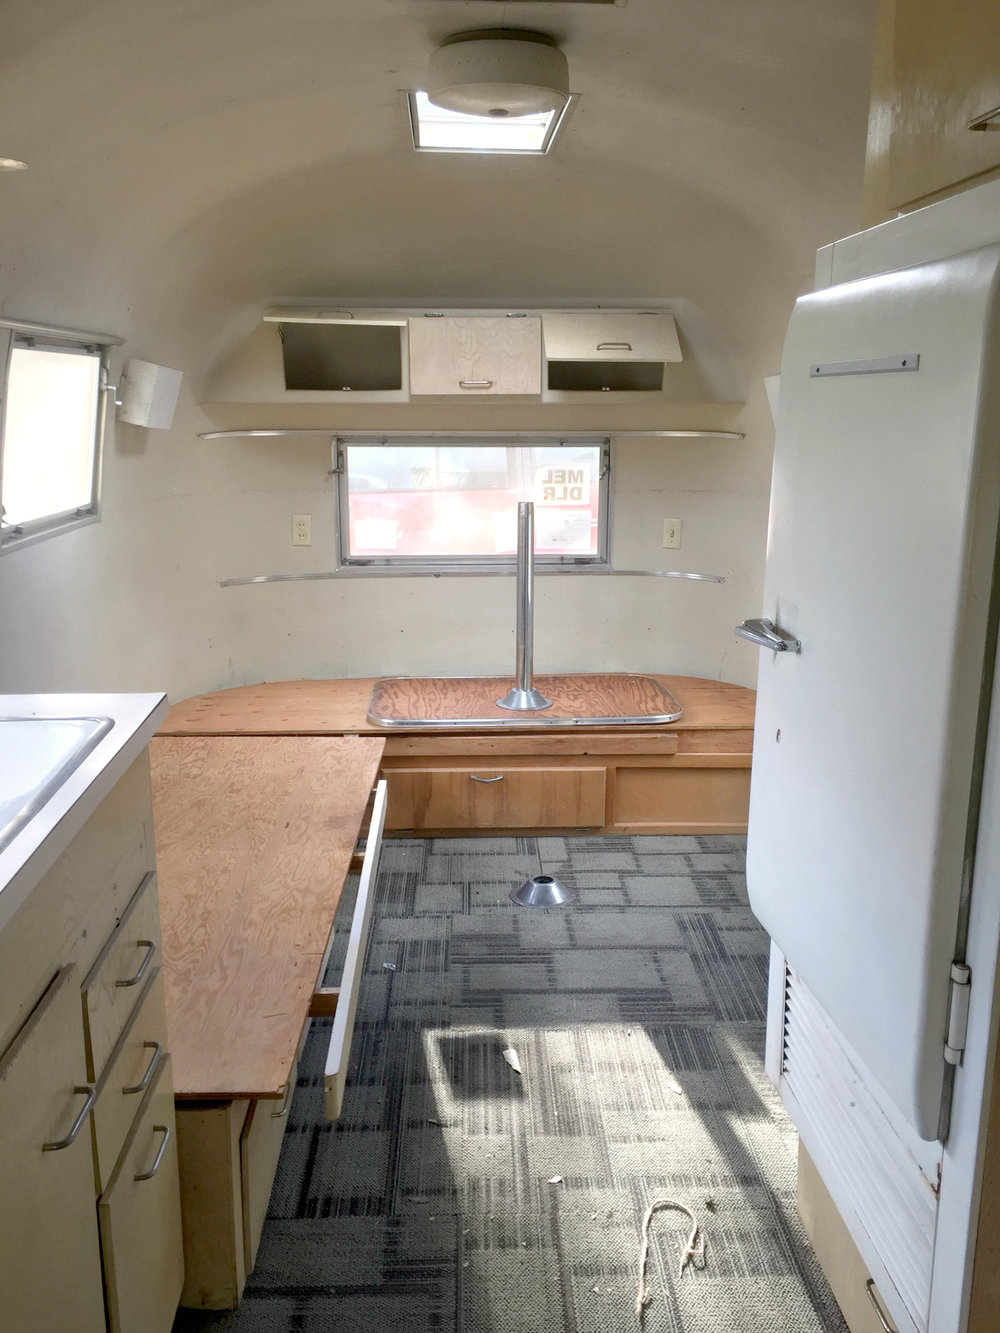 Skye the Airstream - BEFORE reno 20 July 2017 3.jpg